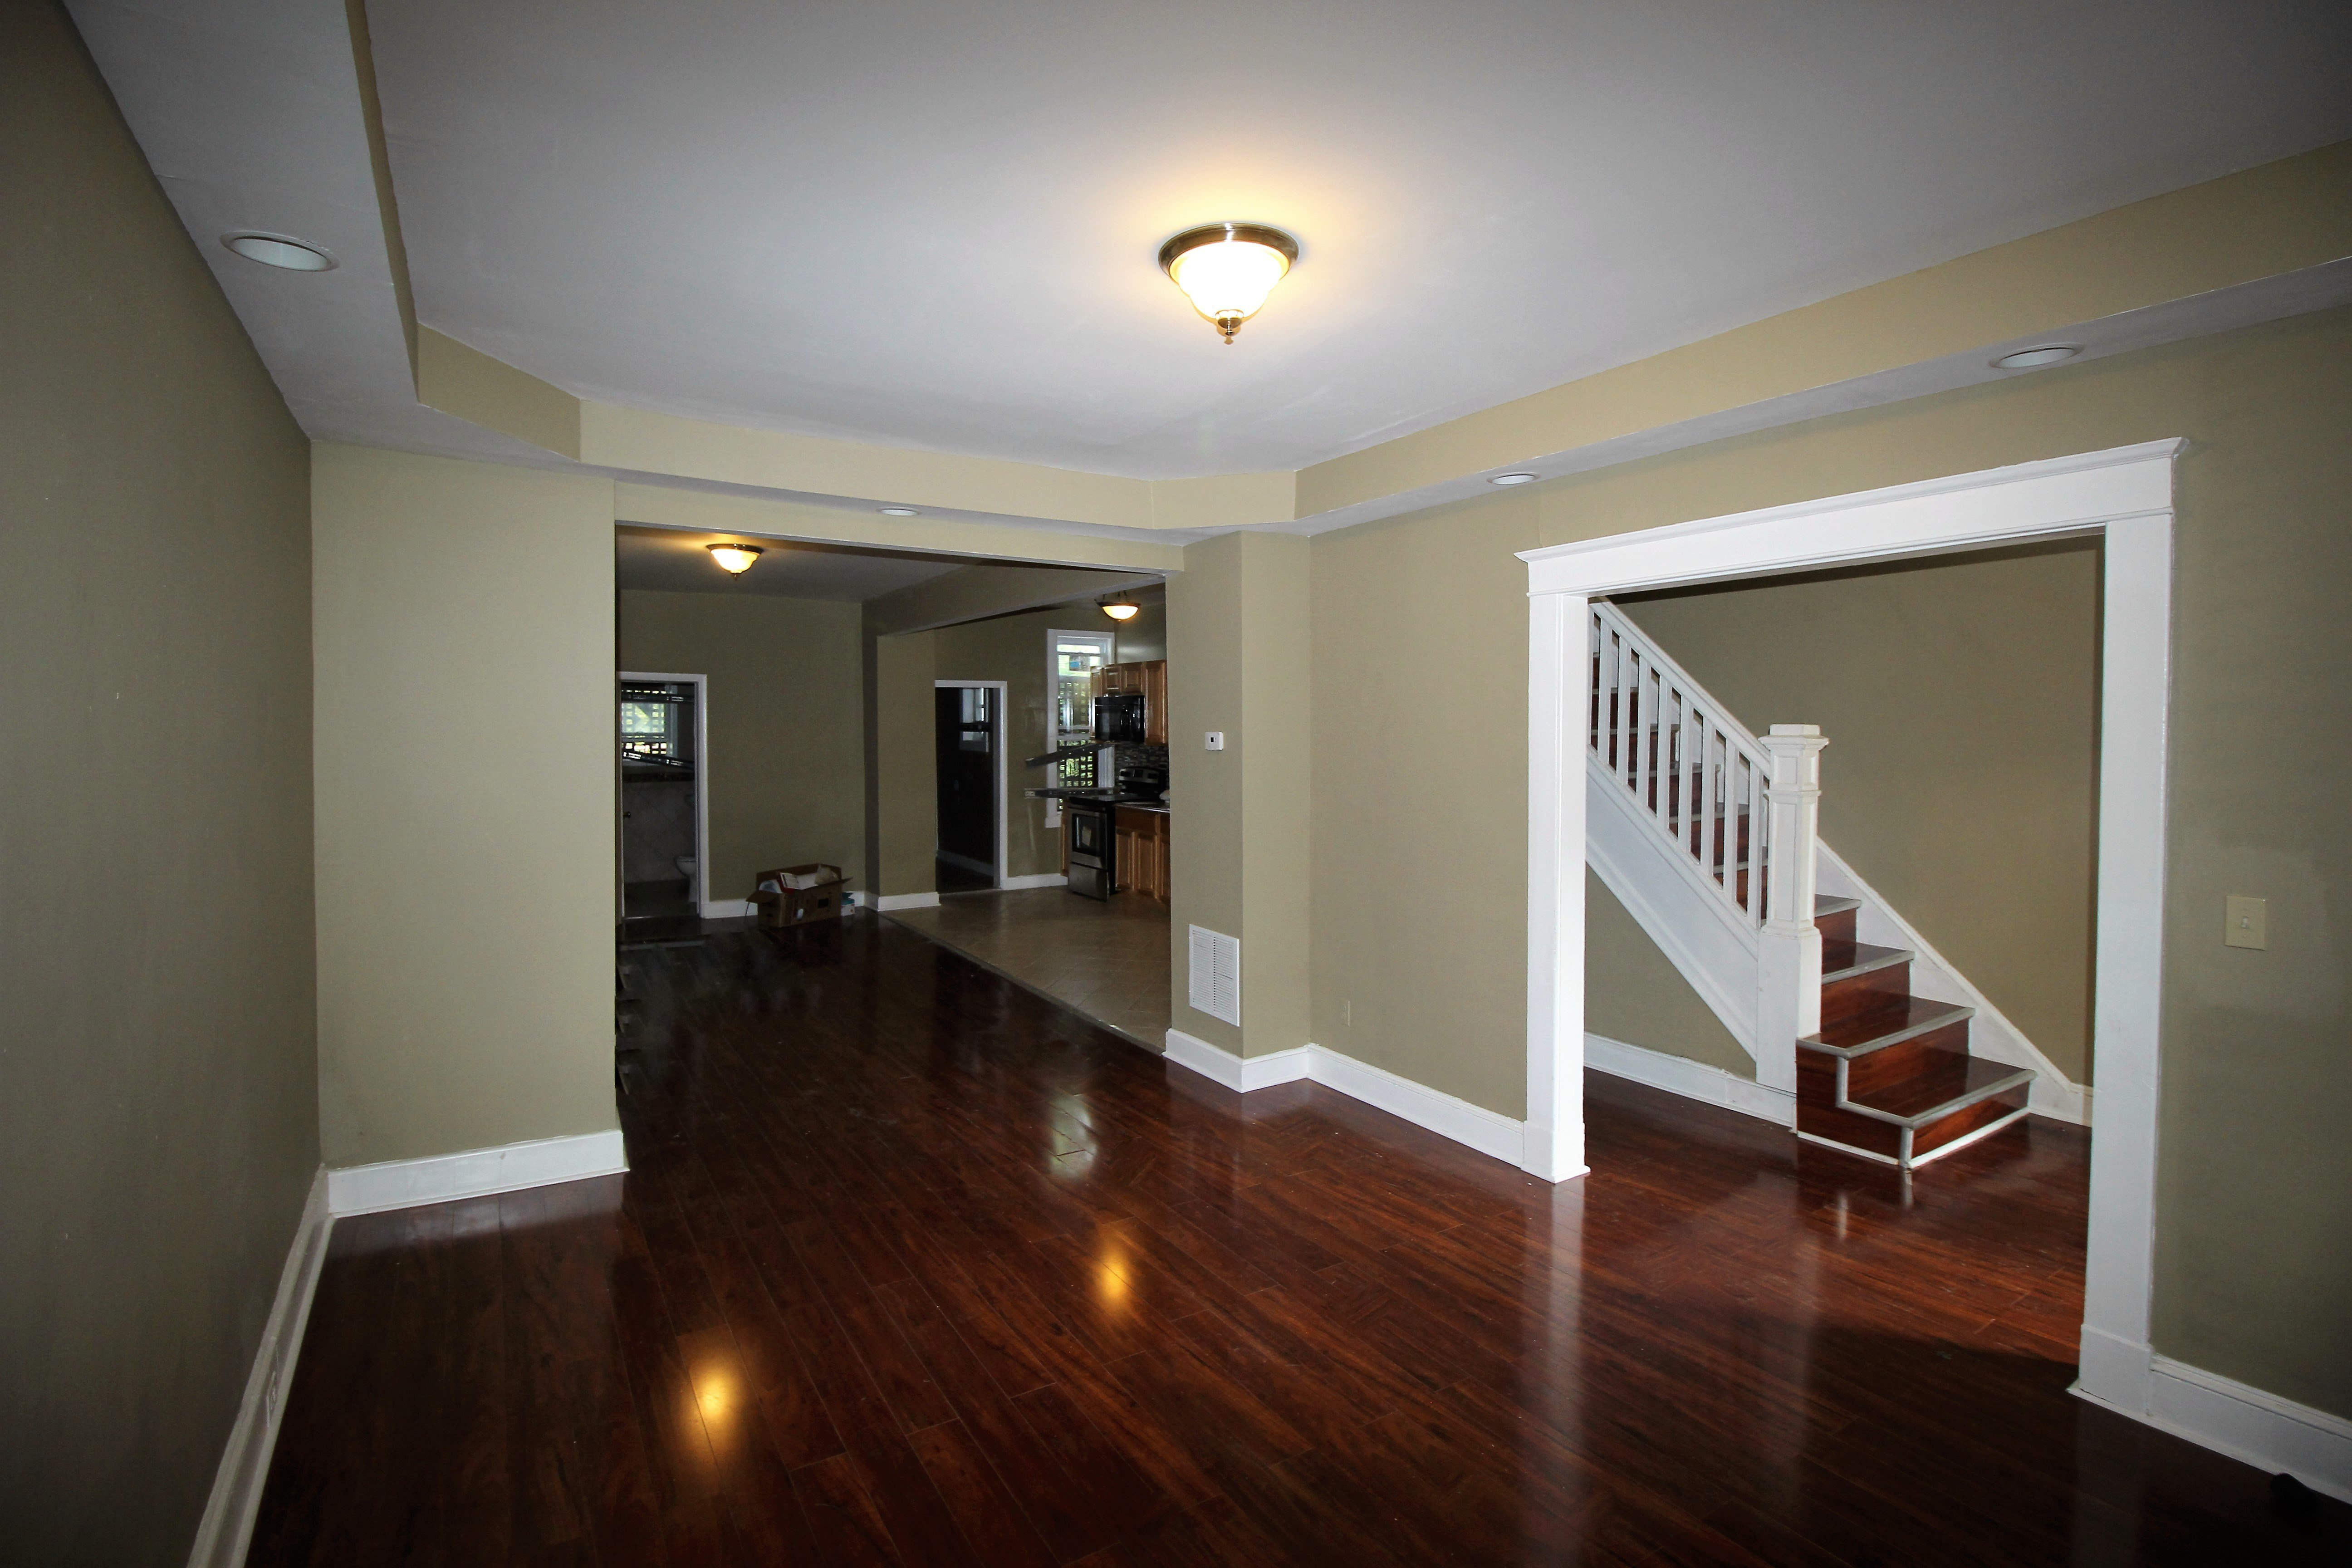 Best Section 8 Housing And Apartments For Rent In Baltimore With Pictures